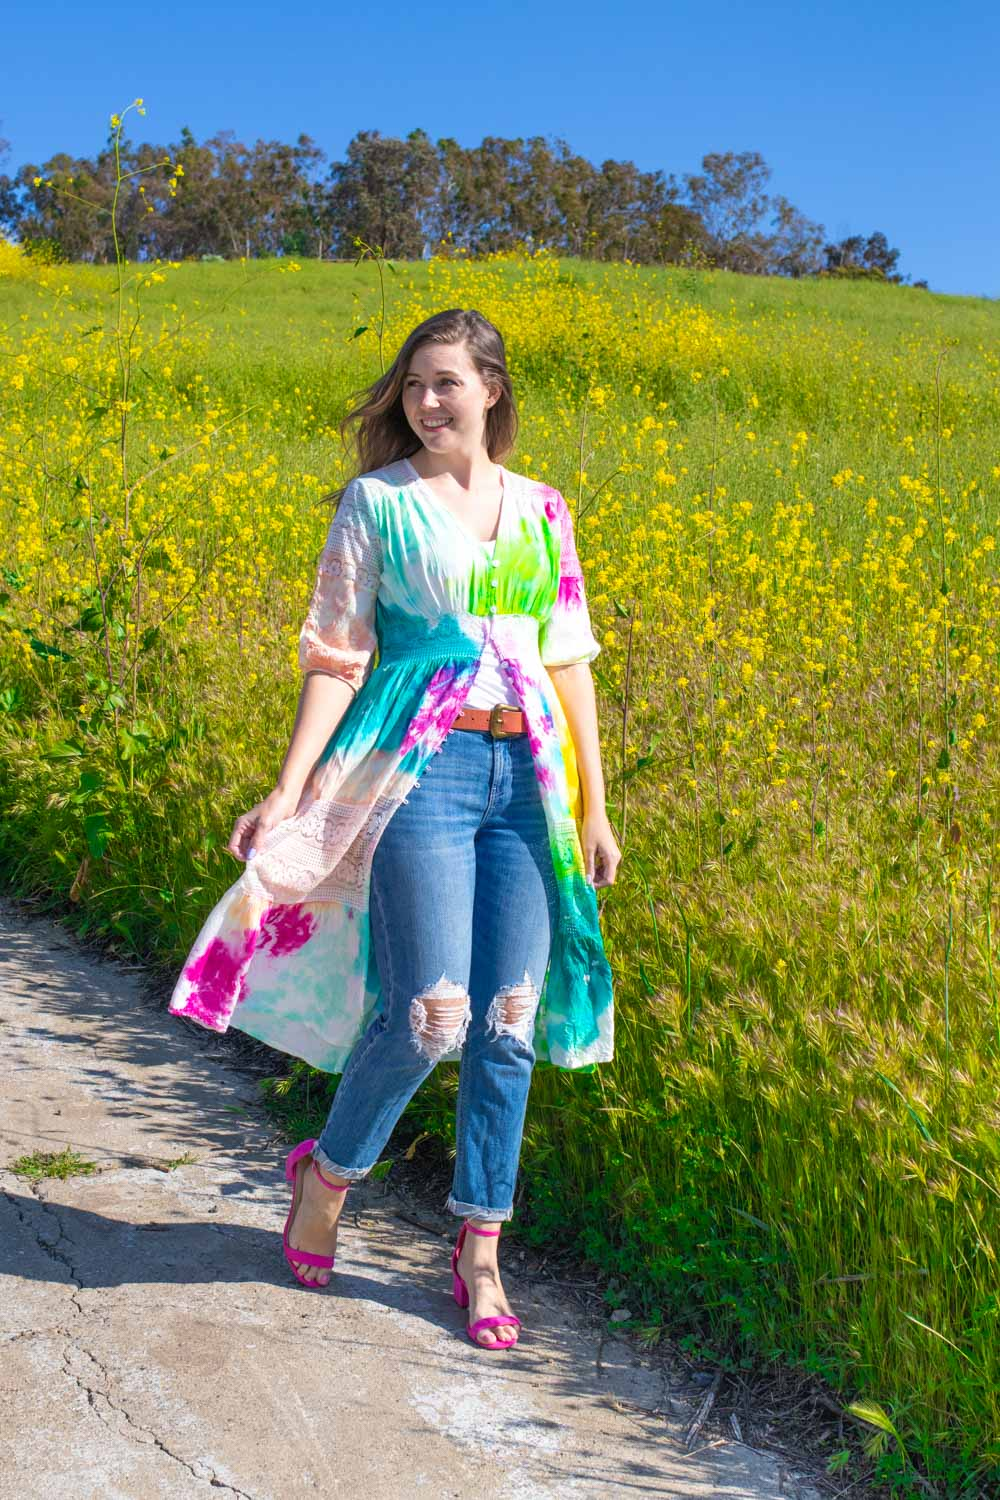 woman wearing colorful kimono diy with tie dye pattern